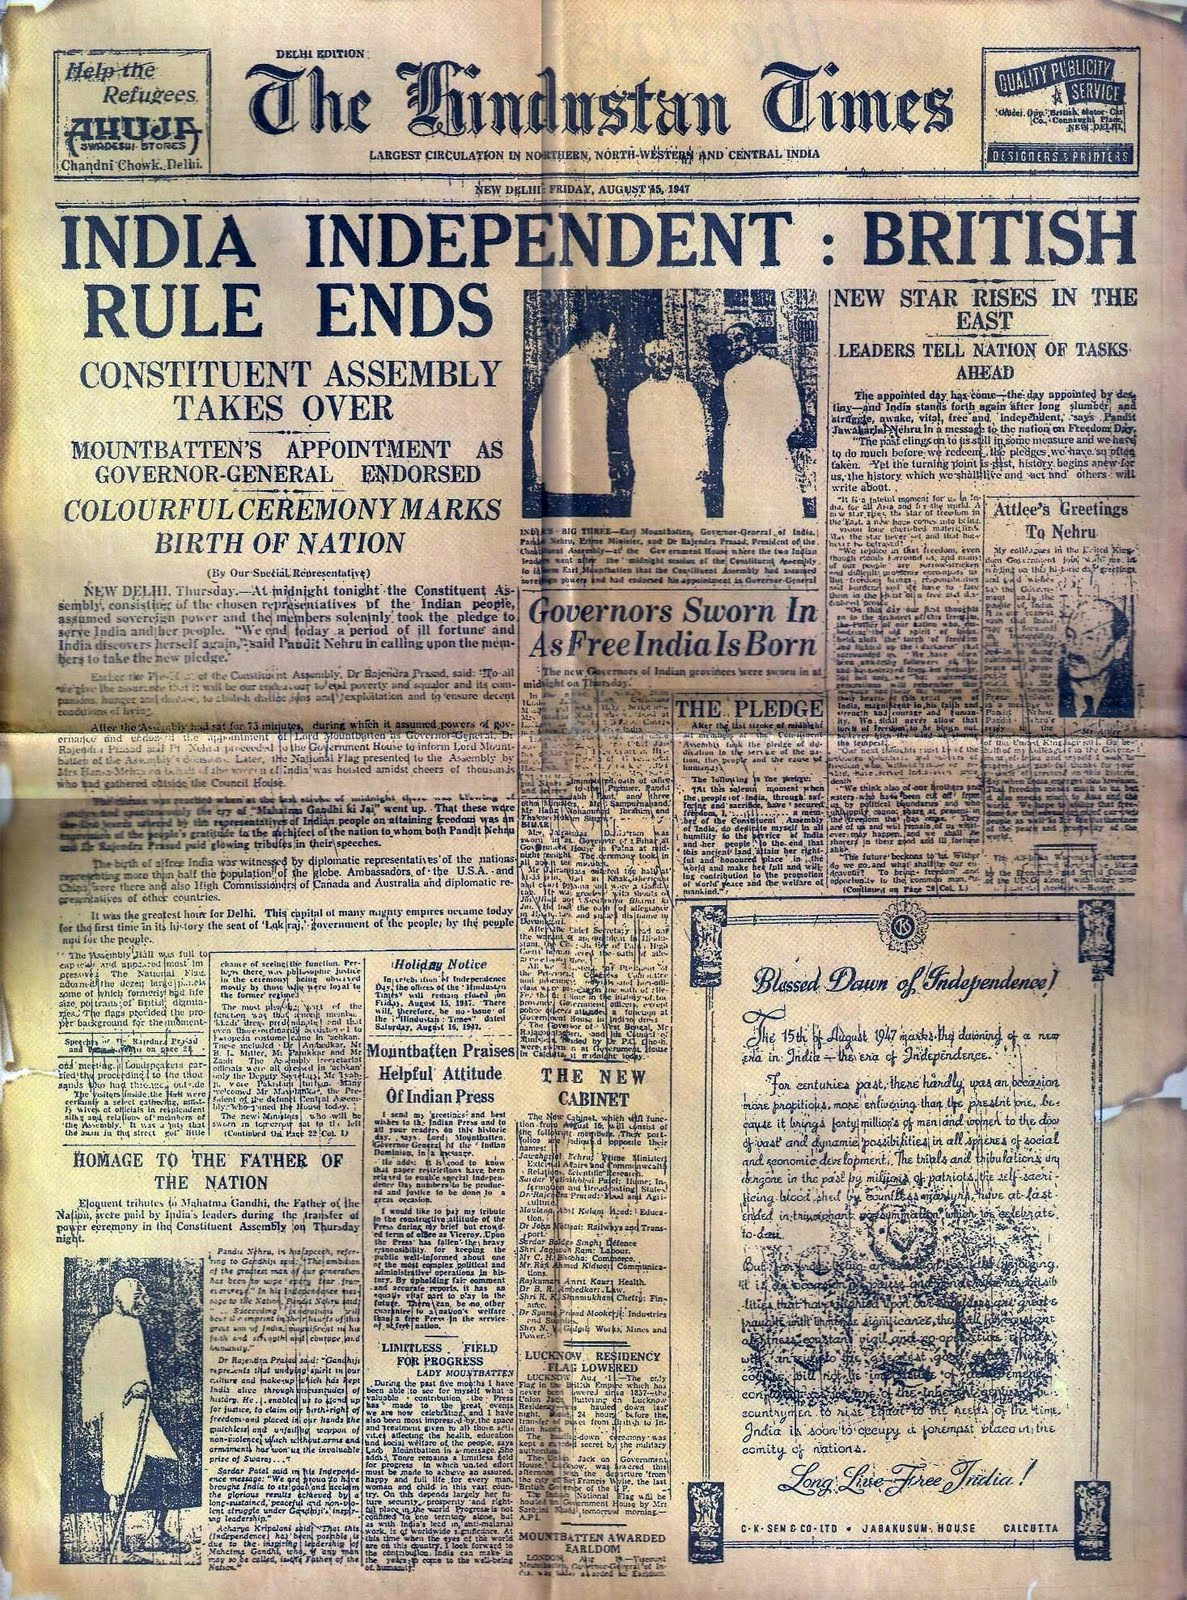 The_Hindustan_Times_front_page_15_August_1947_(1187_×_1600)